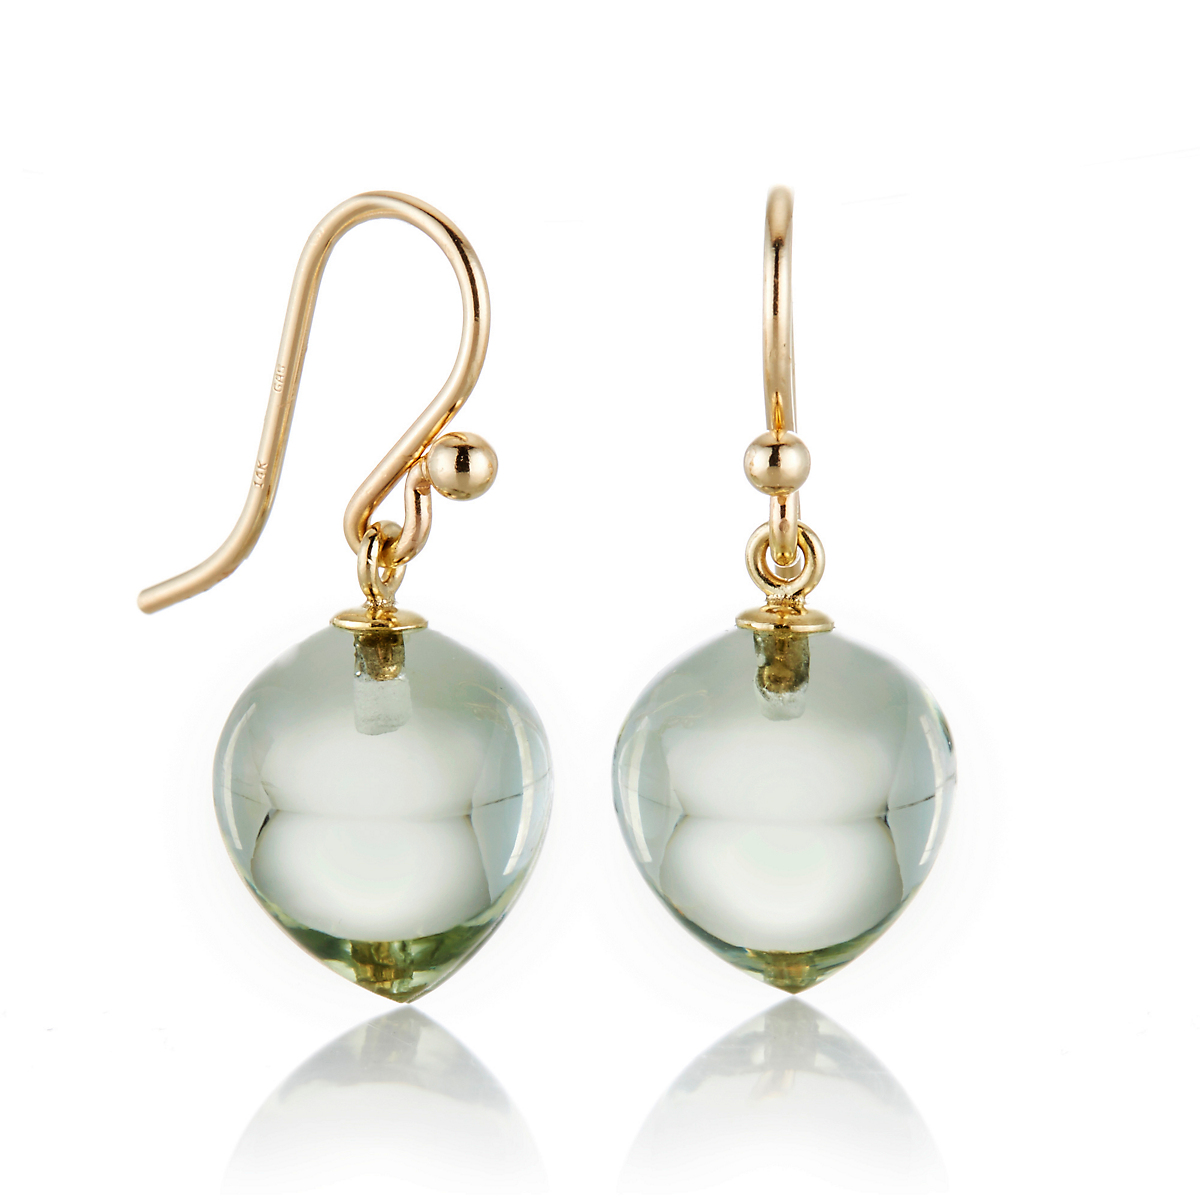 Gump's Green Quartz Berry Drop Earrings